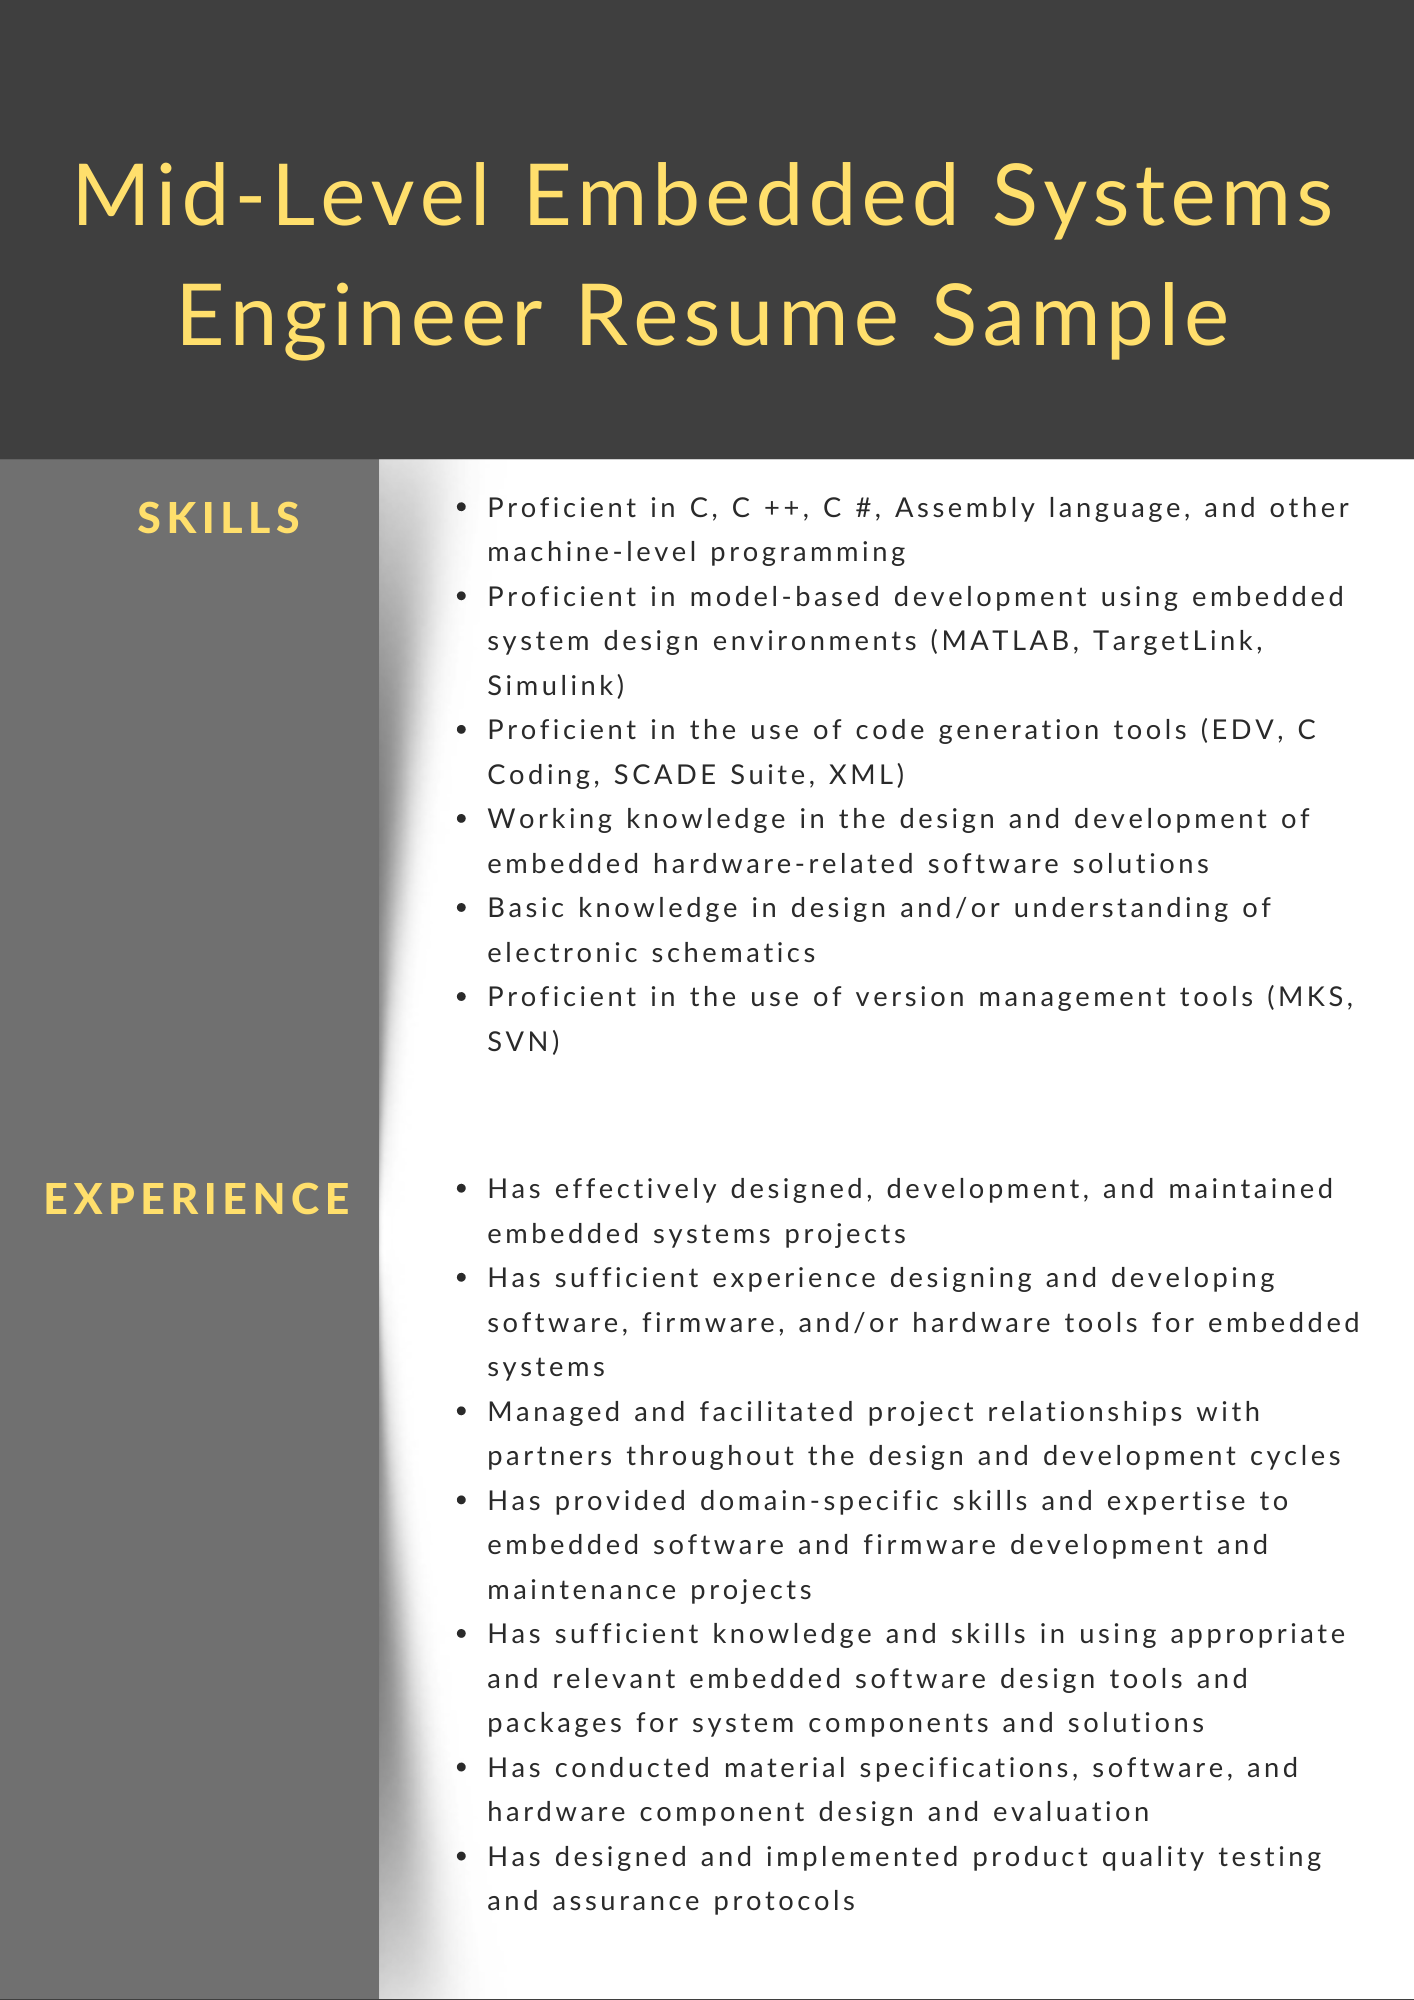 mid-level embedded systems engineer CV example